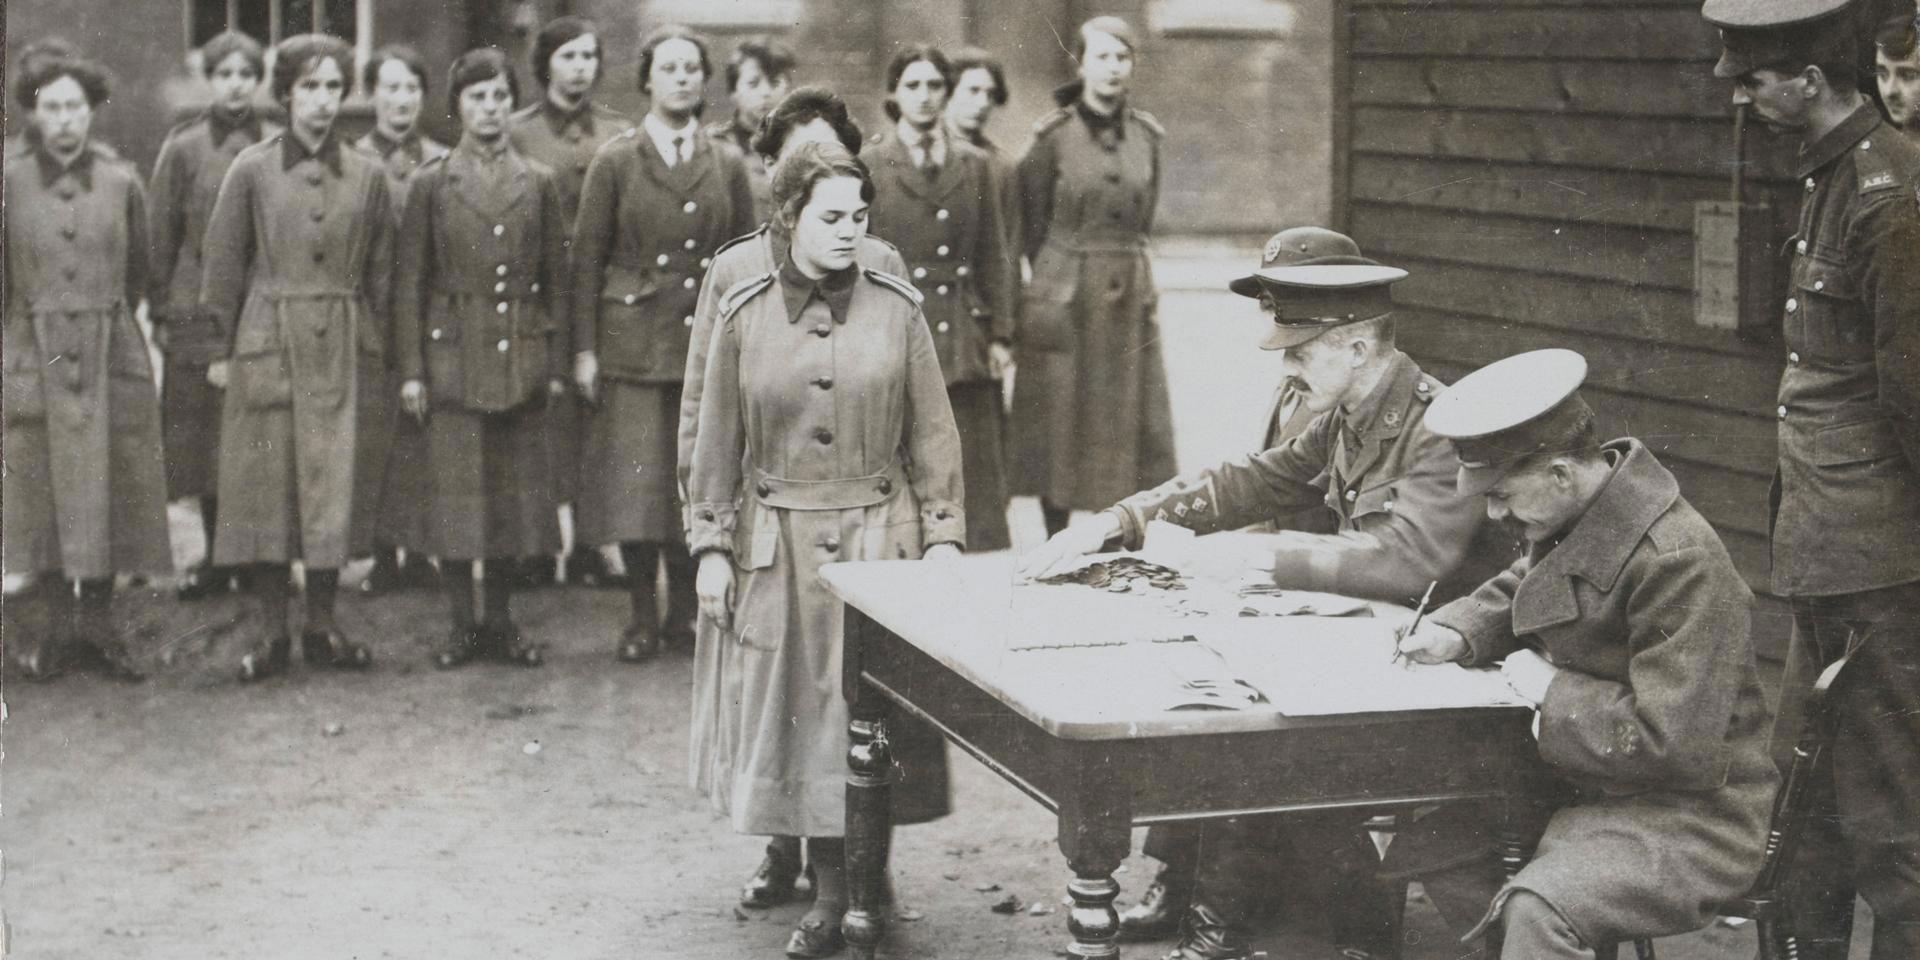 WAAC personnel line up for their pay, 1917